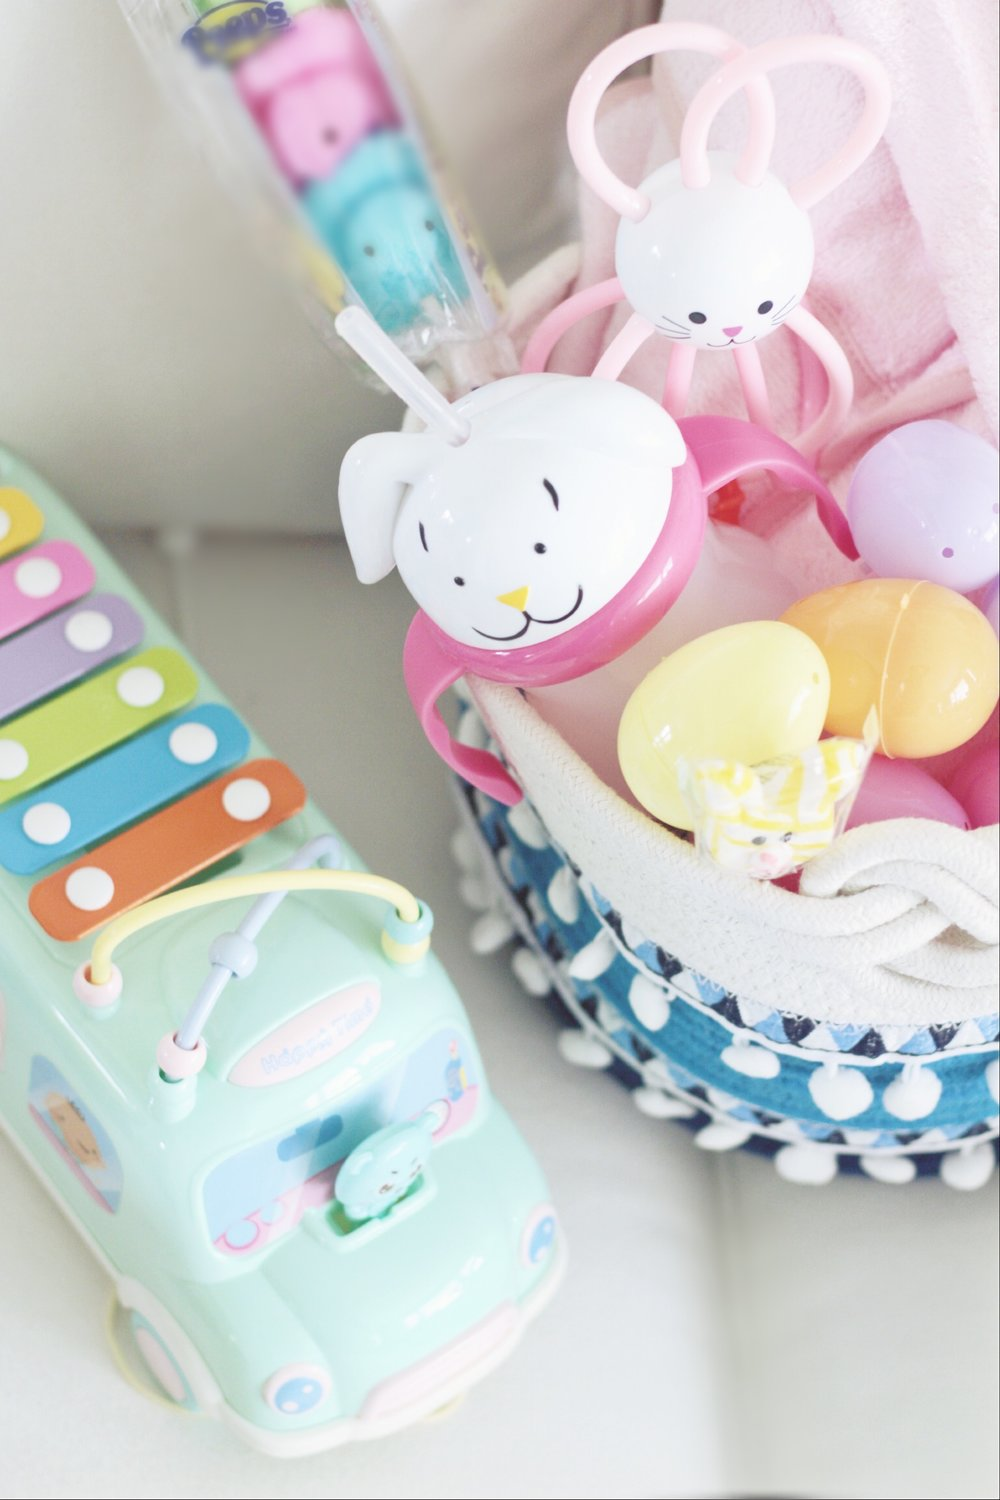 this adorable little xylophone bus is perfect for busy babies - i have a feeling finn will love it too!